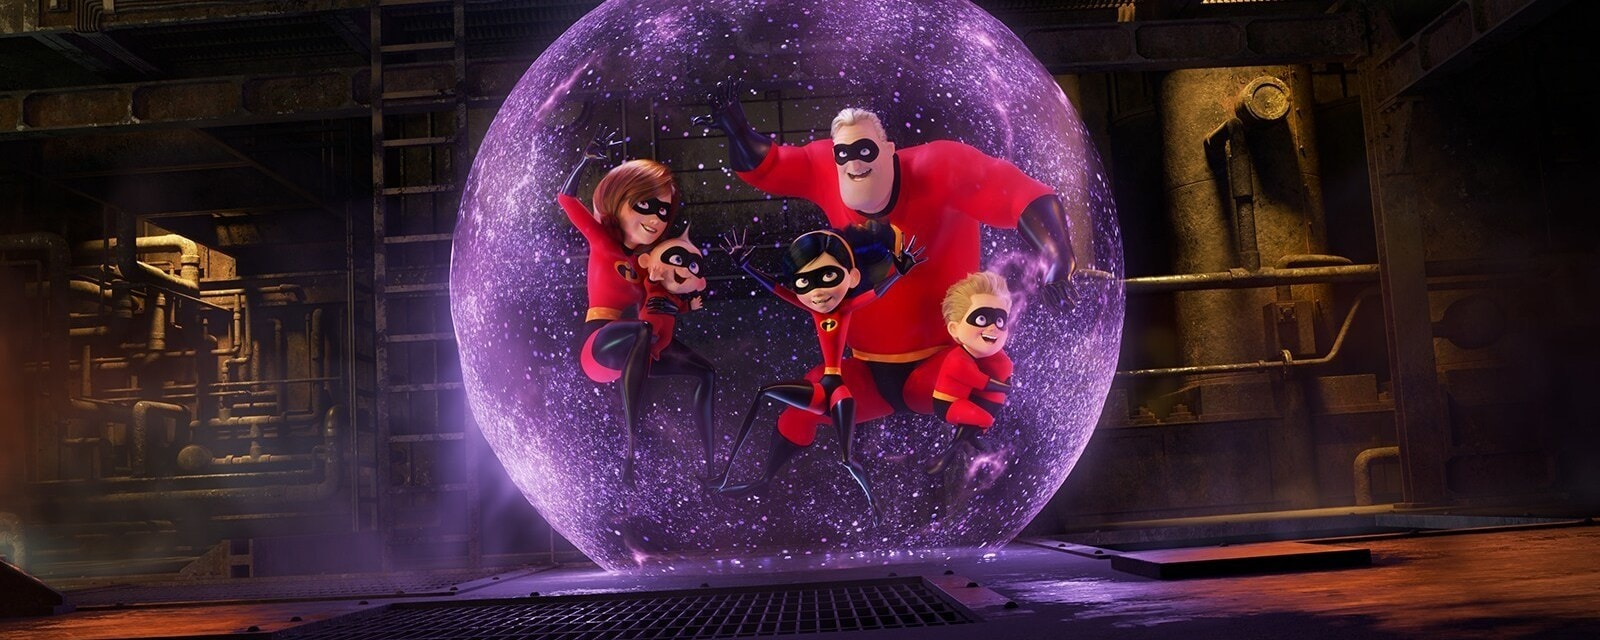 Violet Parr protects her family of supers by throwing a force field around them